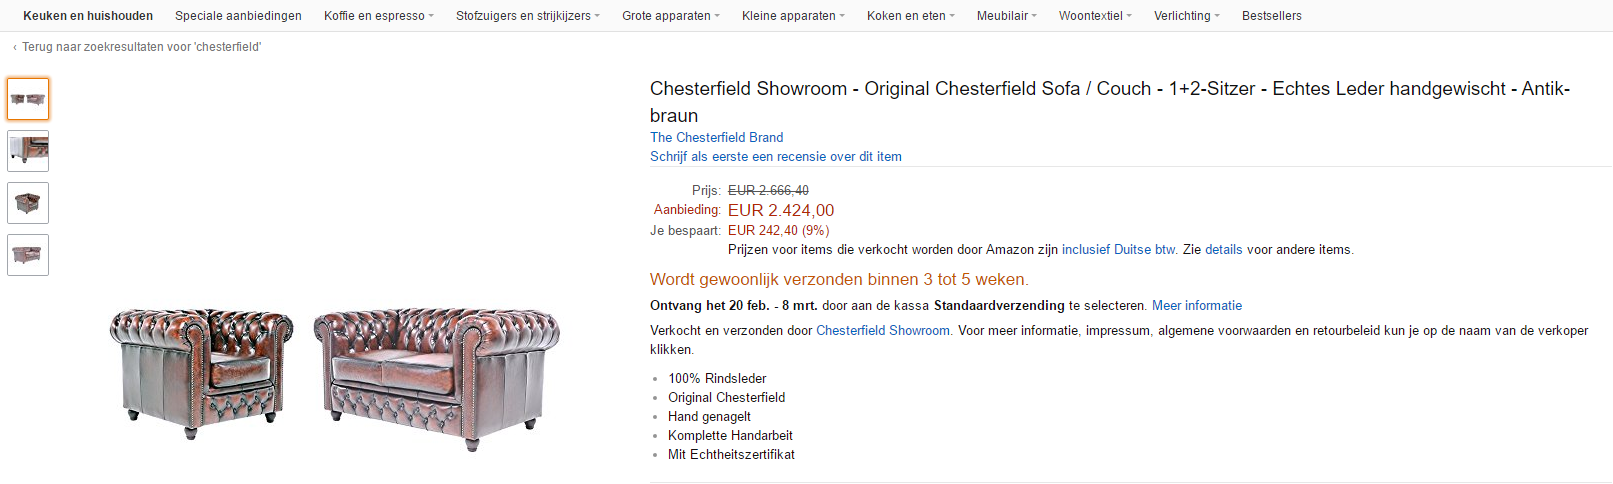 Amazon.de Chesterfield Showroom | AdvertentiePlanet